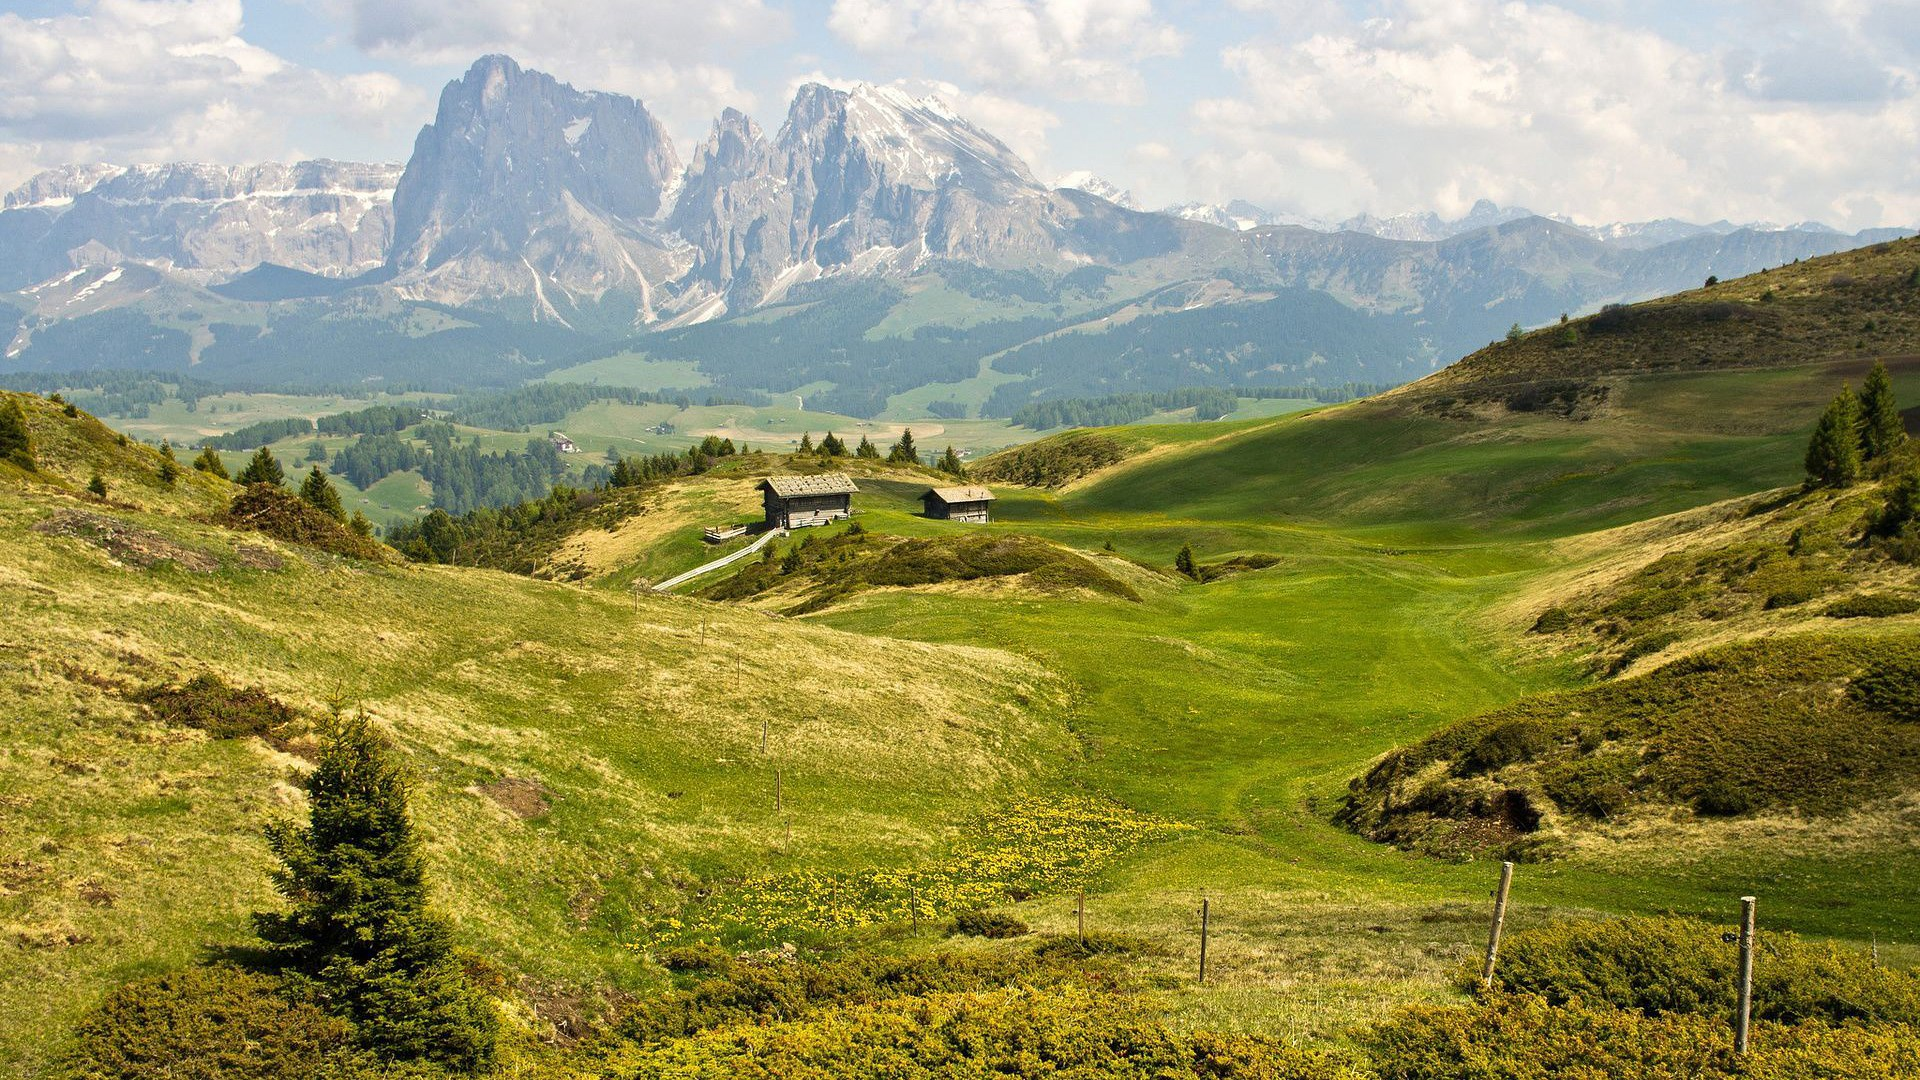 Wallpapers For Desktop Nature Scenes Beautiful Scenery - High Resolution Picture Of The Alps , HD Wallpaper & Backgrounds